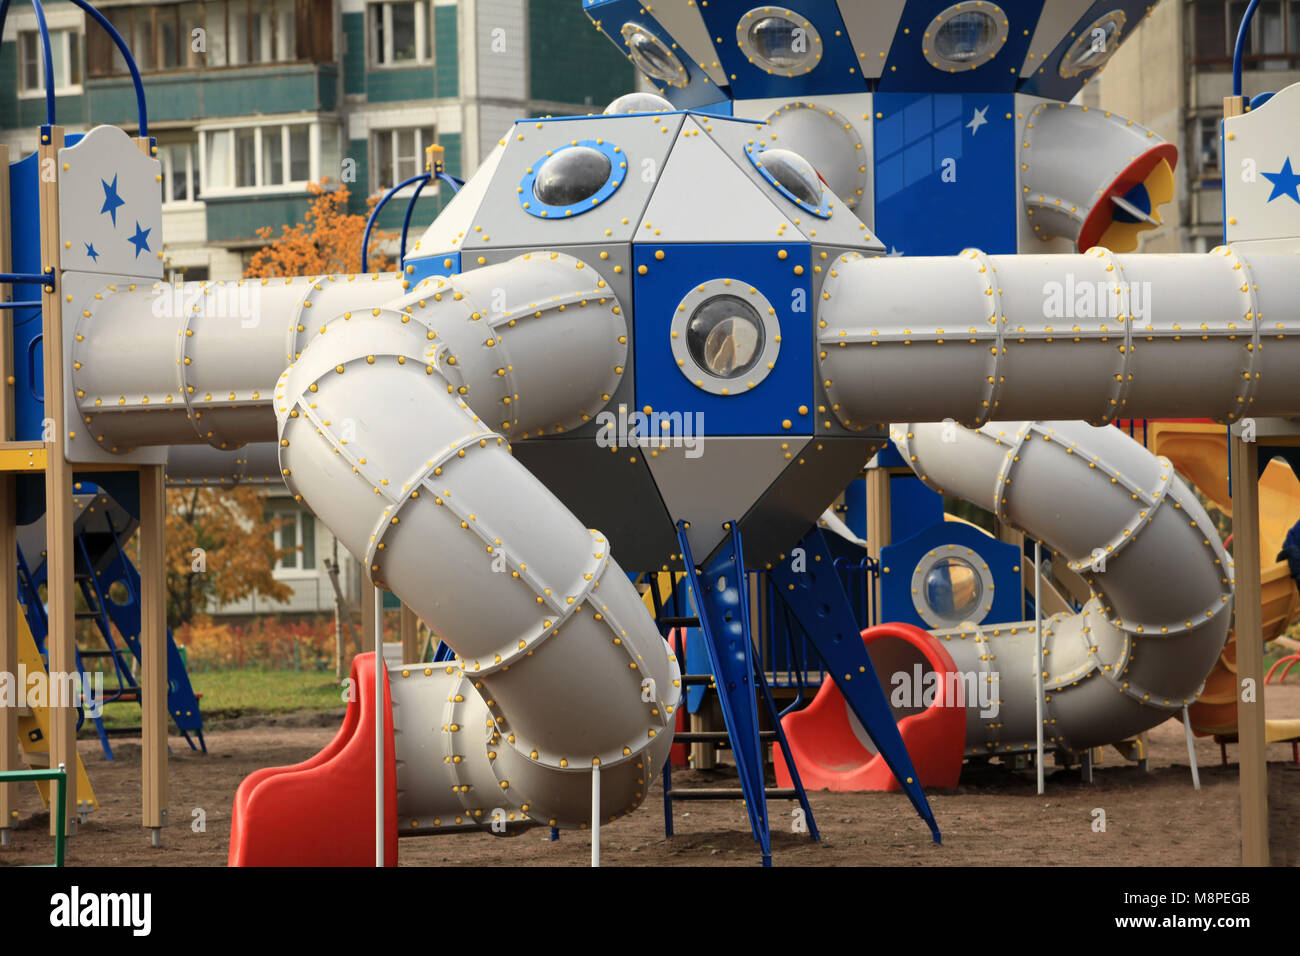 The gaming  spaceport   in the playground - Stock Image